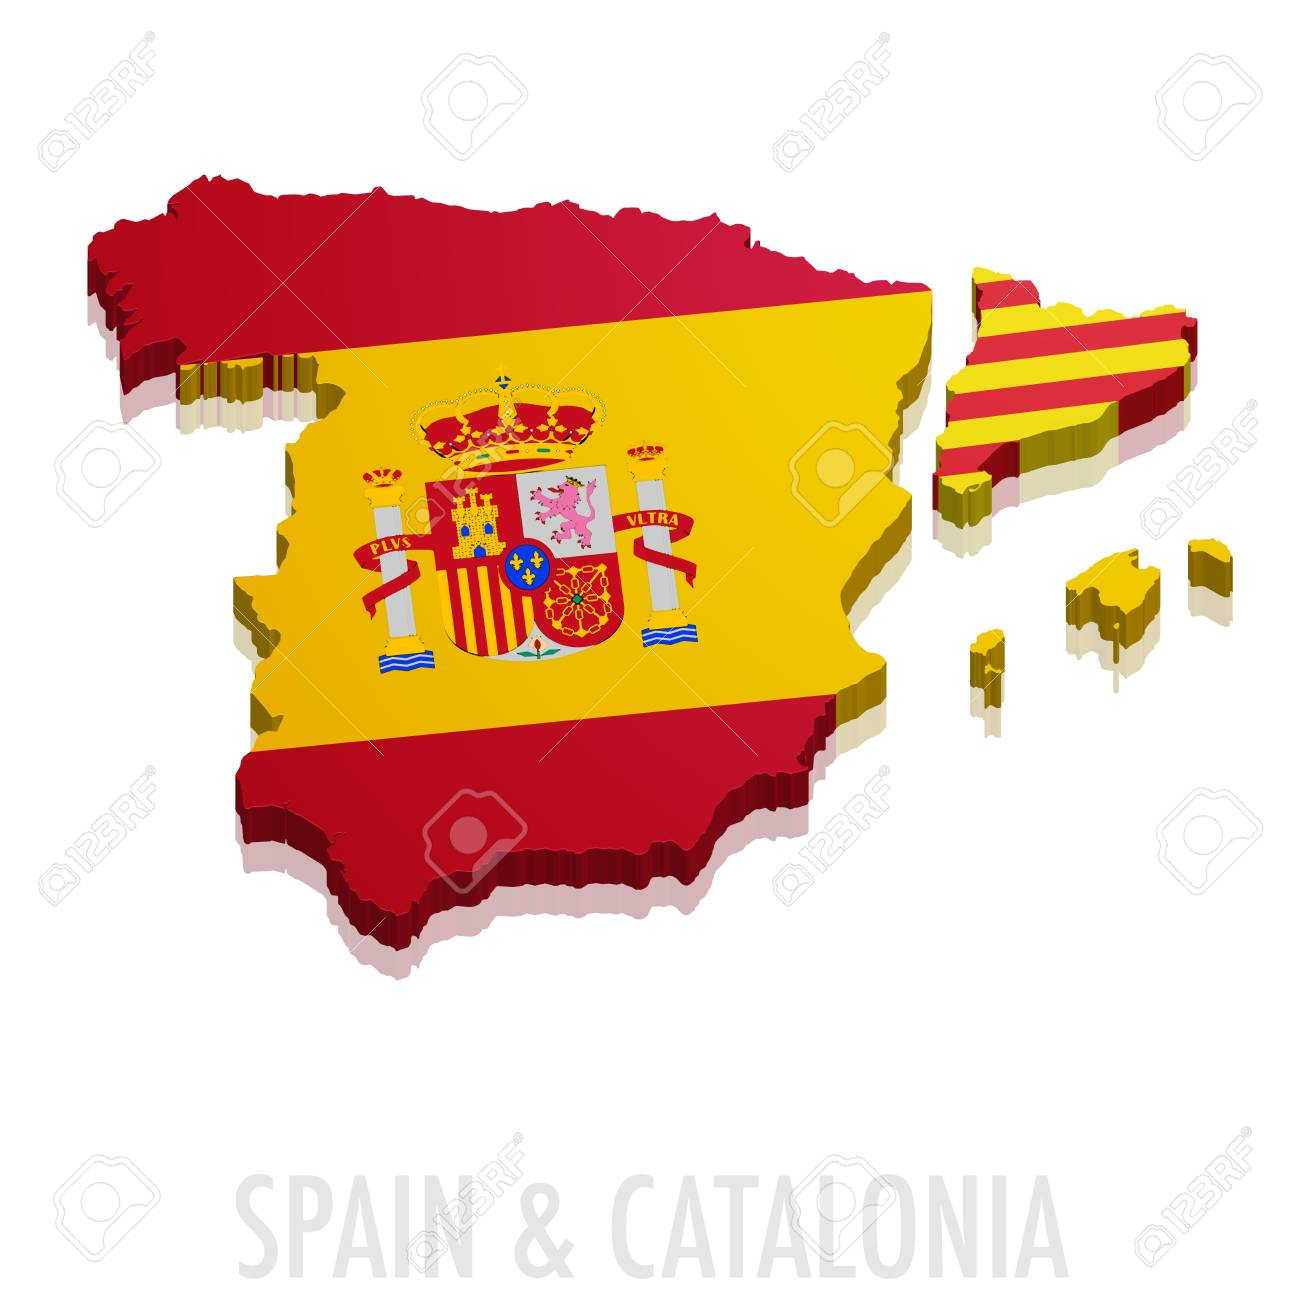 Map Of Spain And Catalonia.Detailed Illustration Of A Map Of Spain And Catalonia With Flag